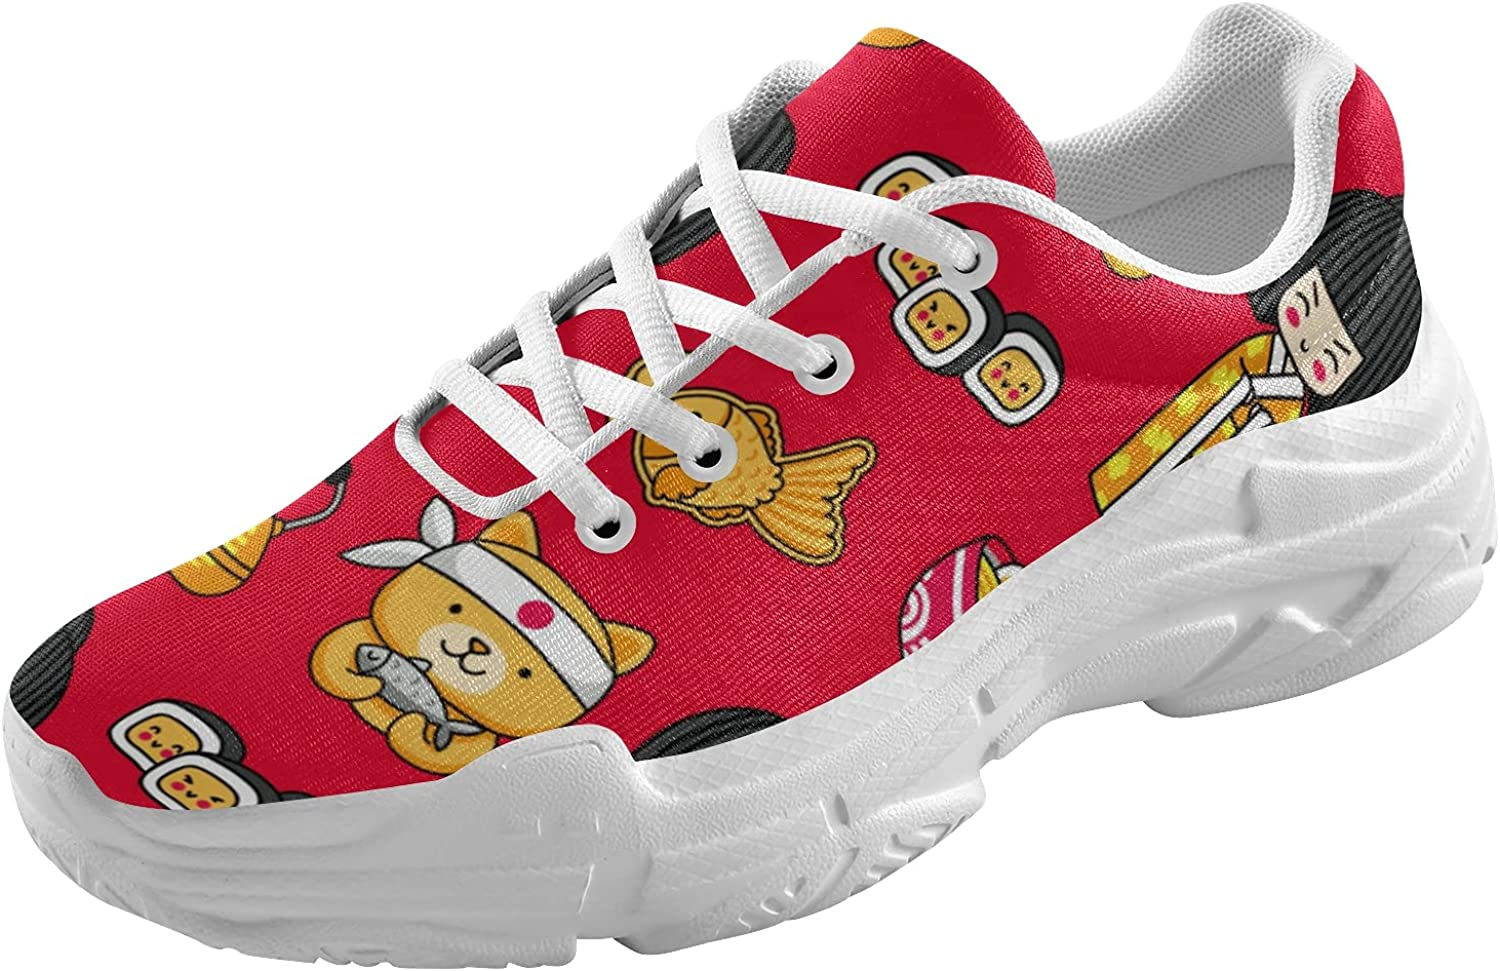 BGXW Japanese Doll Women Lac We Austin Mall OFFer at cheap prices Fashion Sneakers-Lightweight Chunky